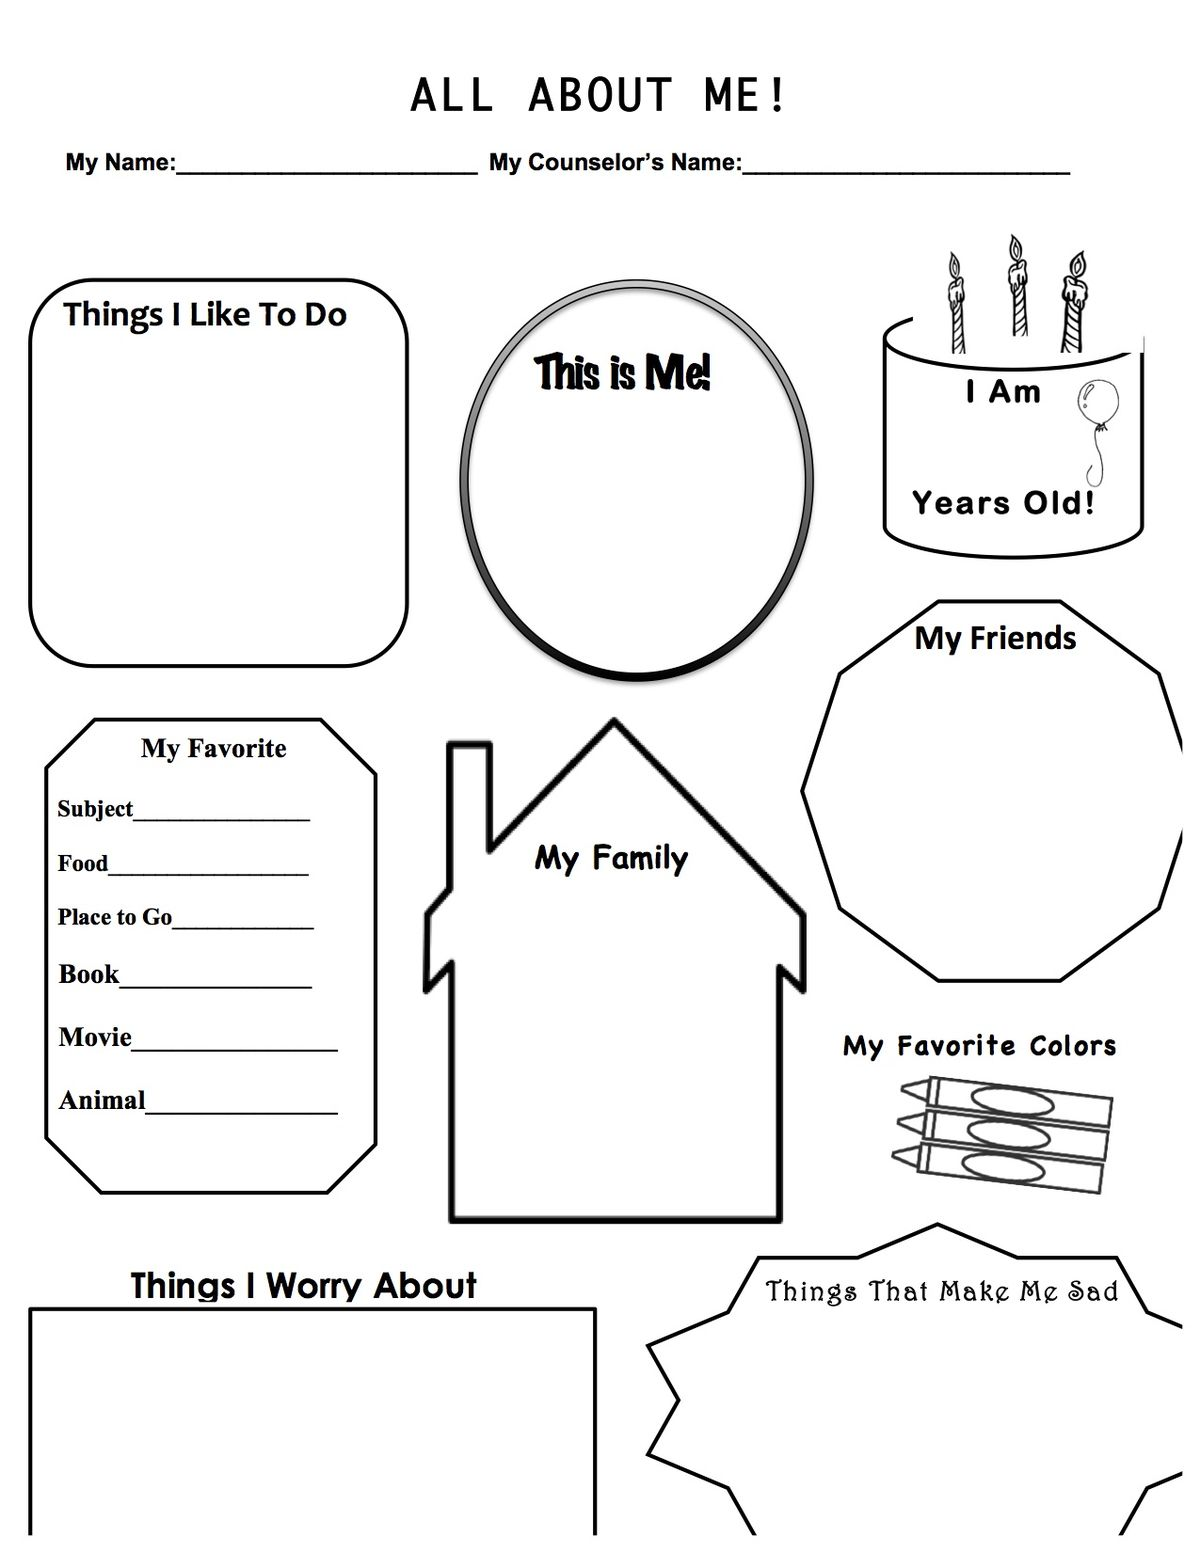 building trust in a relationship worksheets for middle school